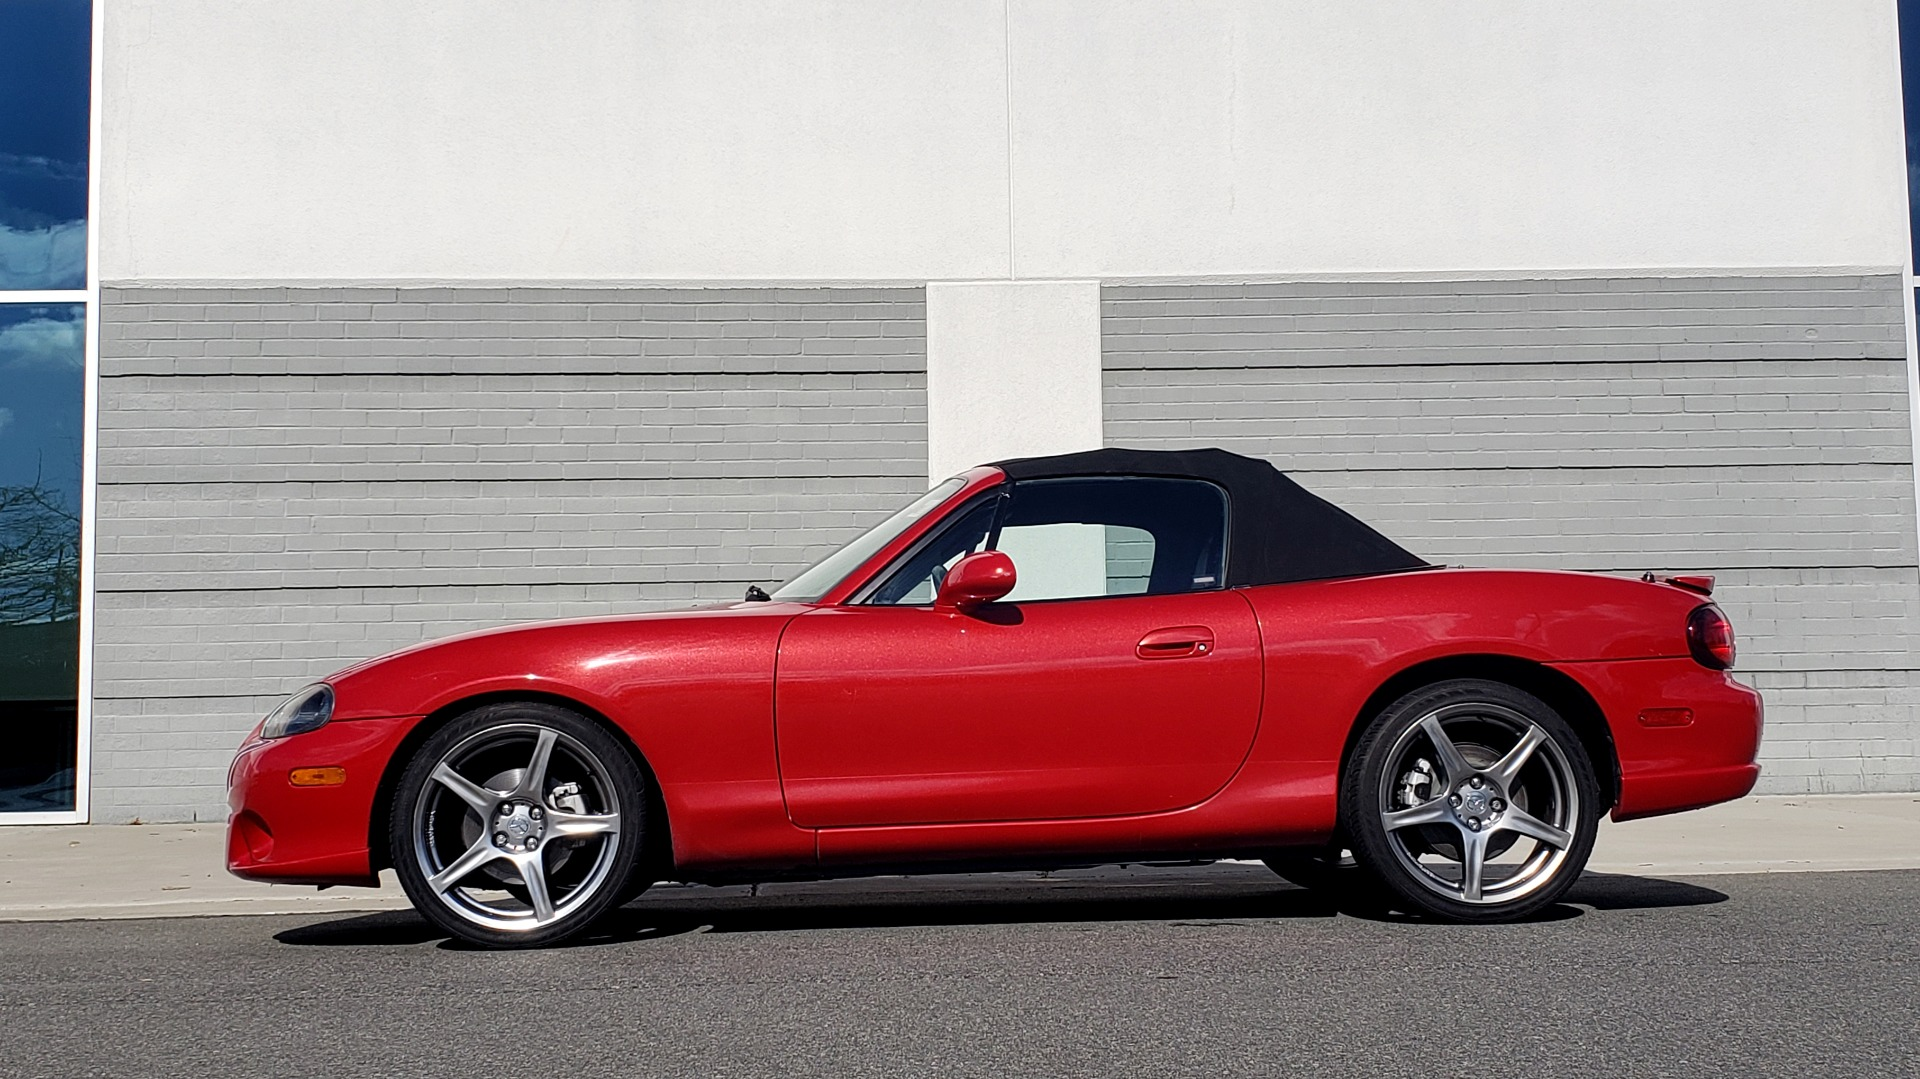 Used 2004 Mazda MX-5 MIATA 2DR CONVERTIBLE MAZDASPEED / GRAND TOURING PKG for sale Sold at Formula Imports in Charlotte NC 28227 14